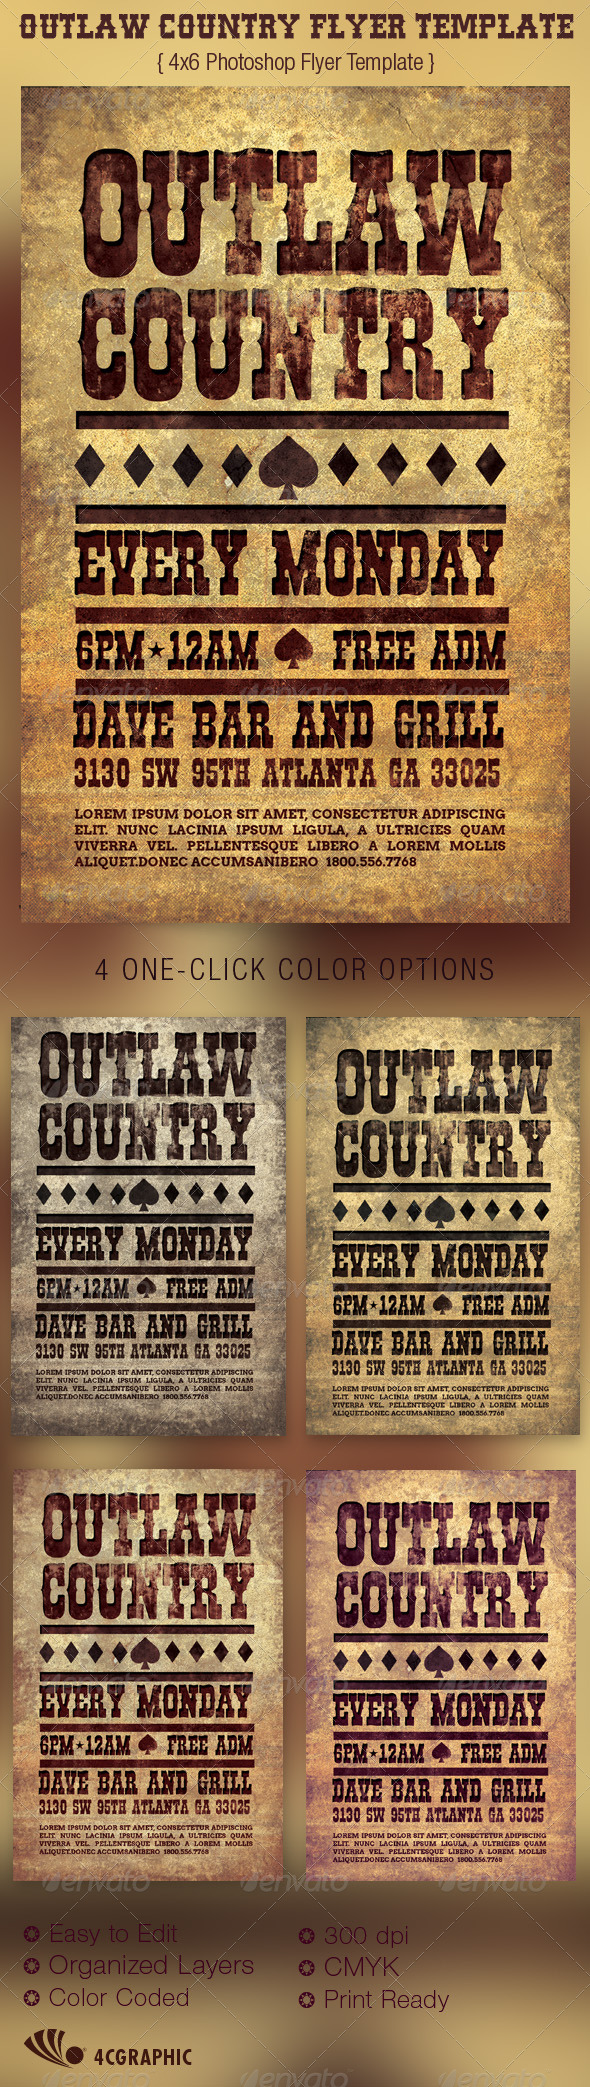 Outlaw Country Flyer Template - Events Flyers